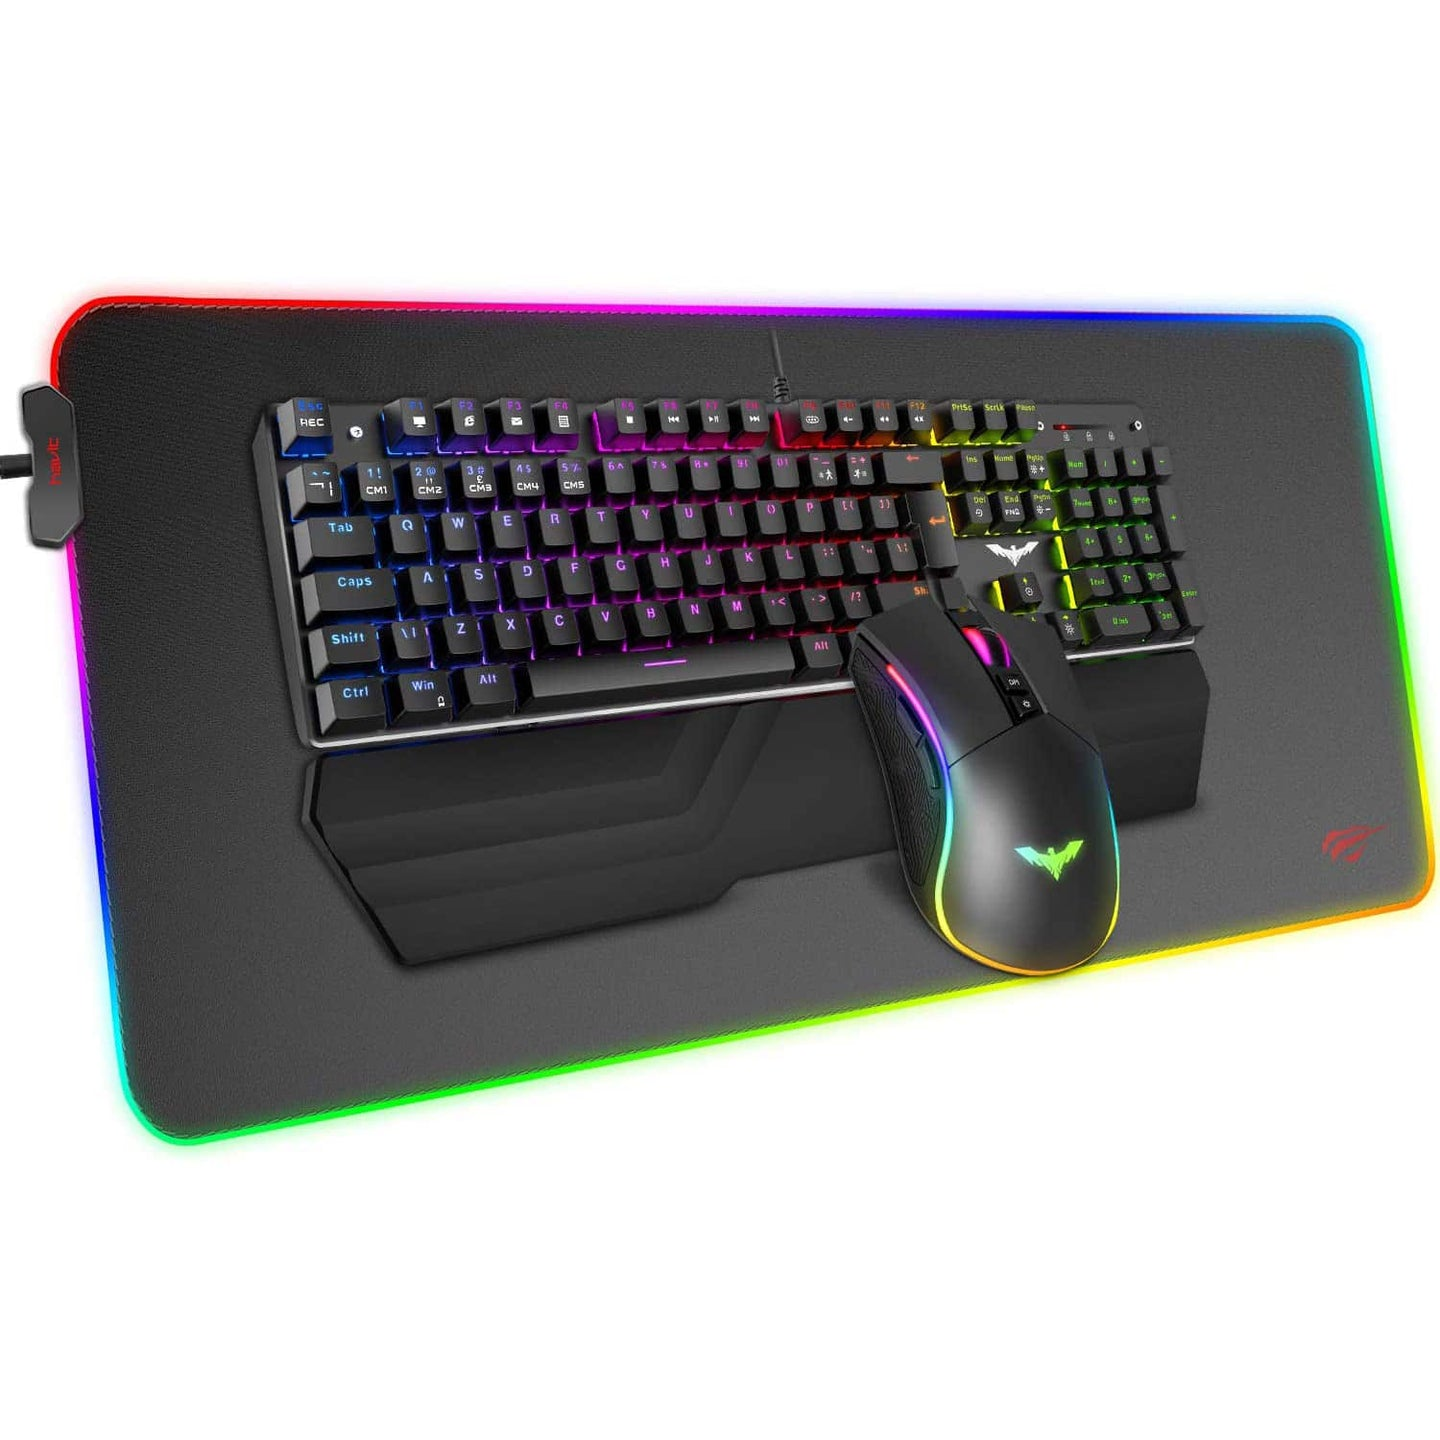 HAVIT KB511L RGB Mechanical Keyboard Mouse & Mouse Pad Combo 104 Keys with Detachable Wrist Rest